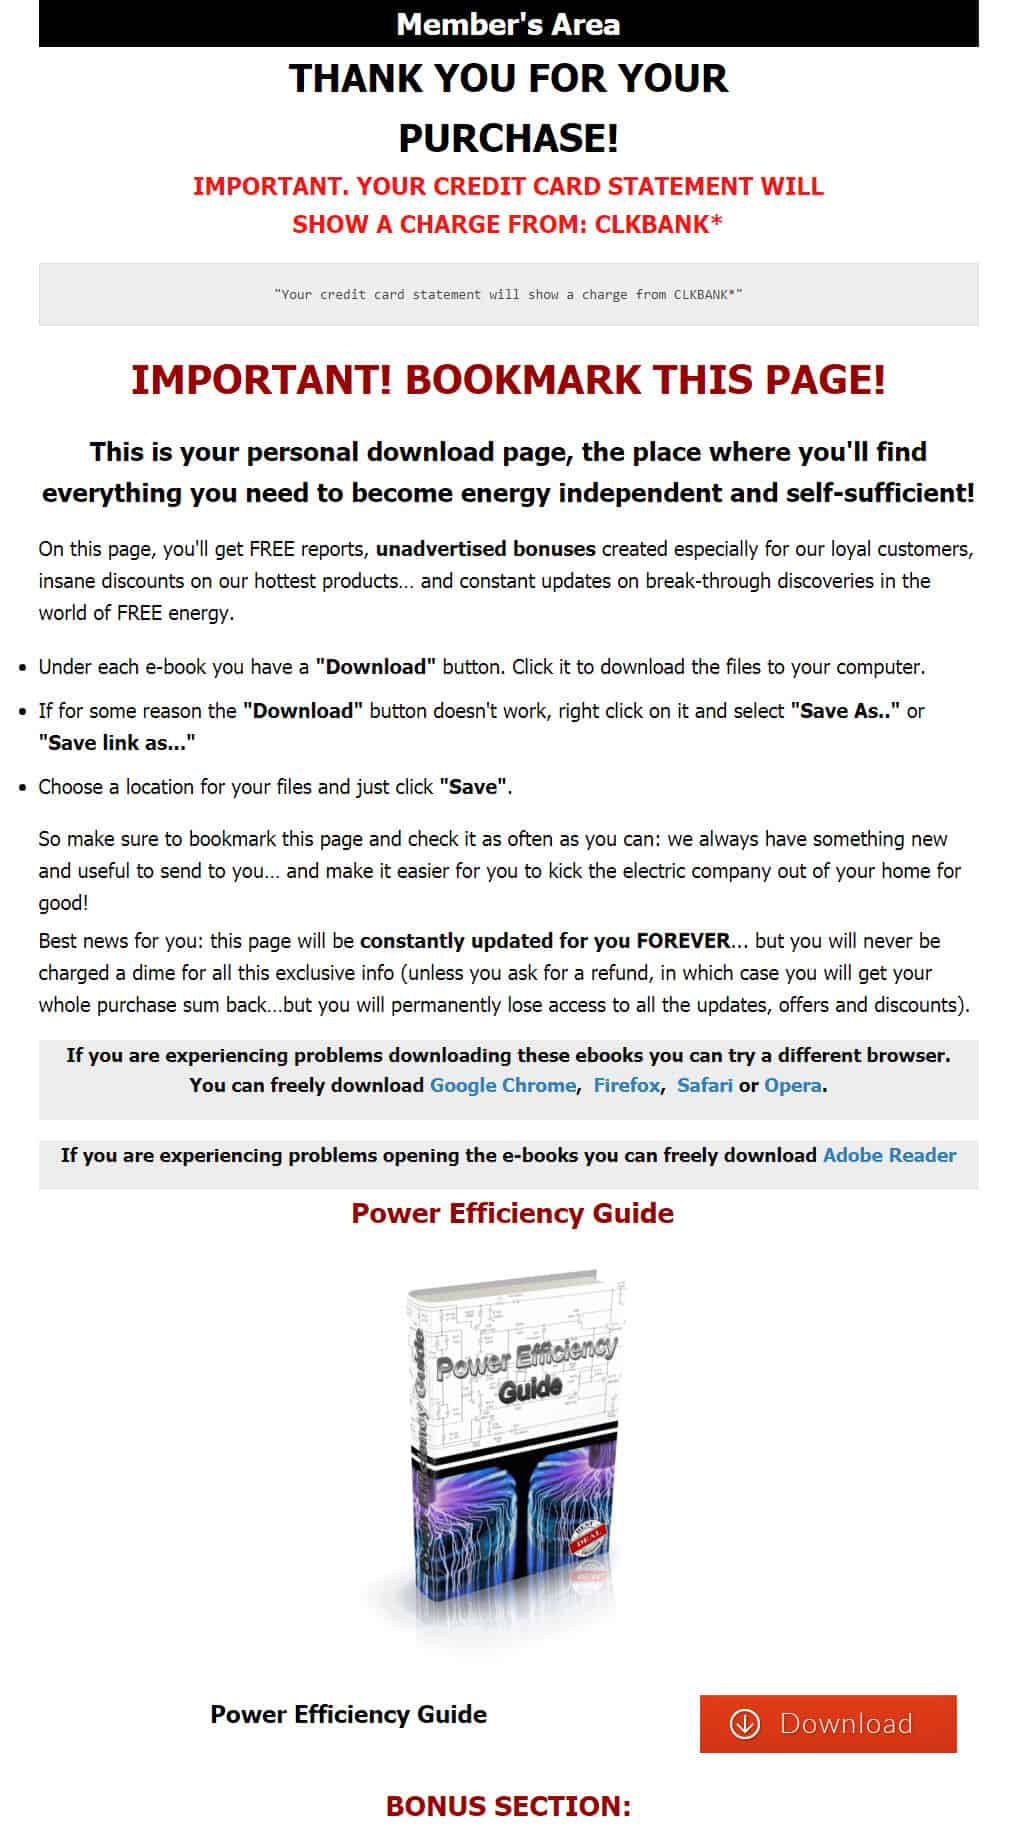 Power Efficiency Guide Download Page